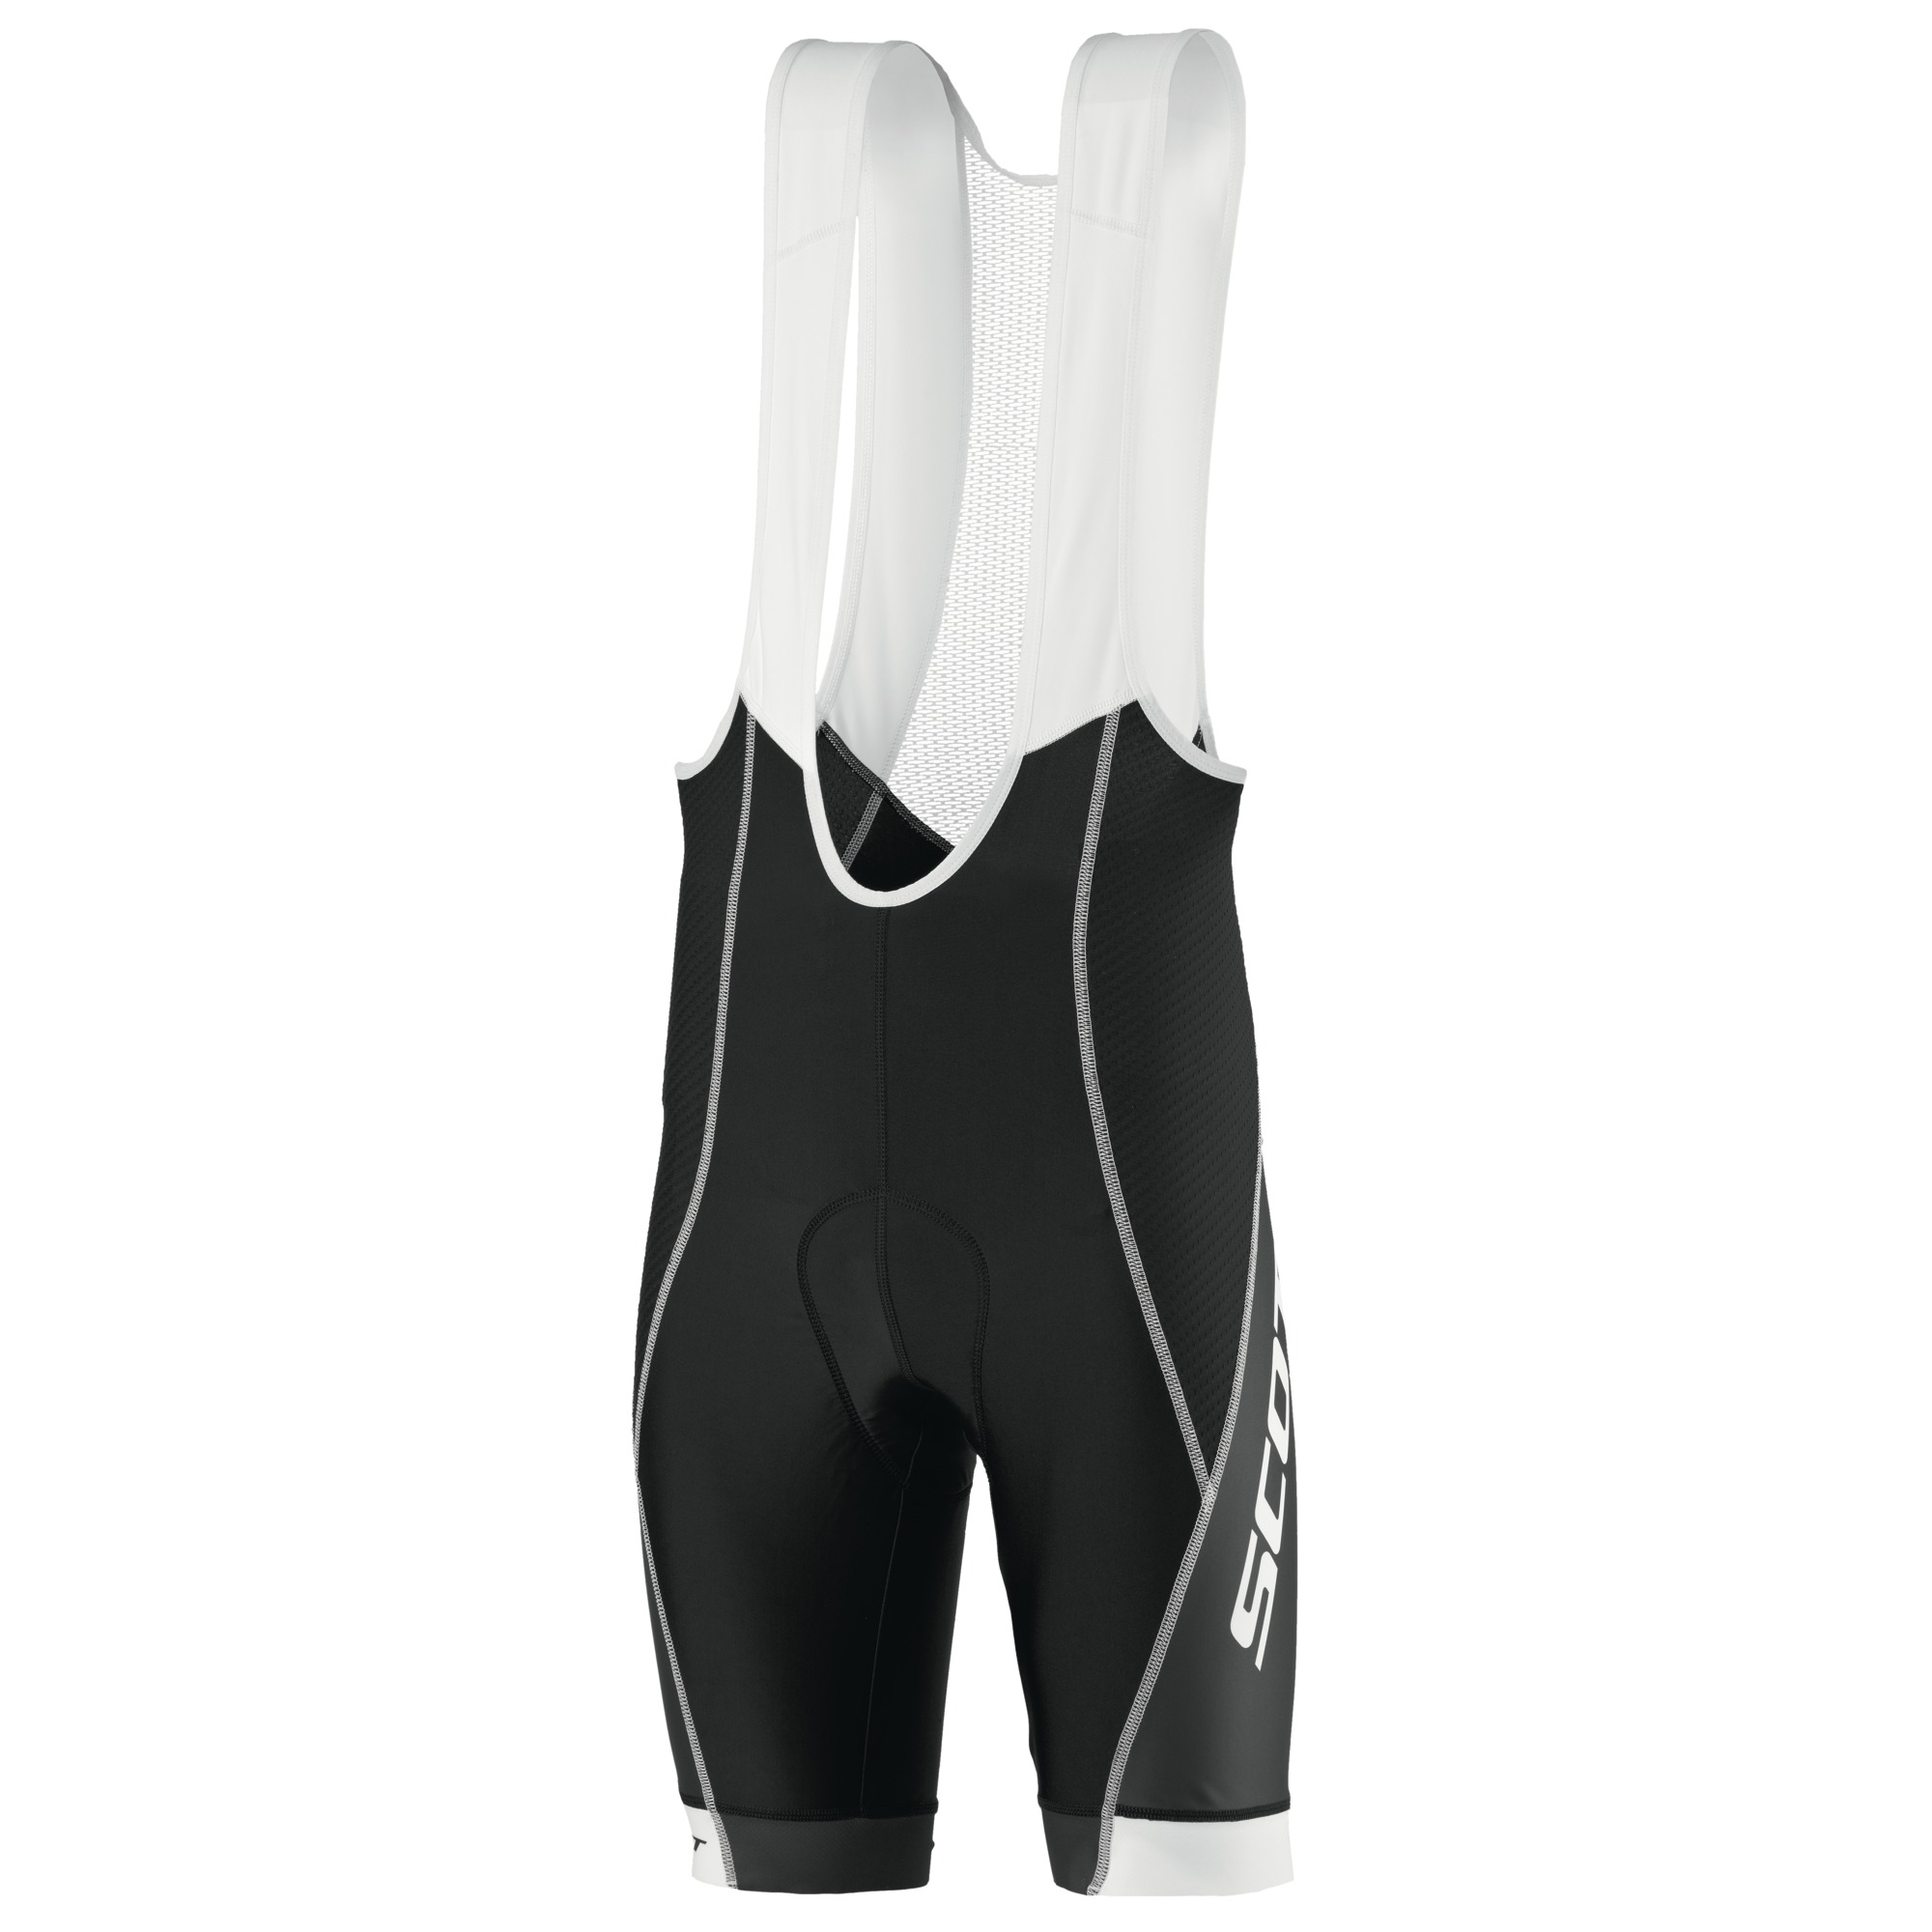 SCOTT Bibshorts Endurance 10 black/white M 2015